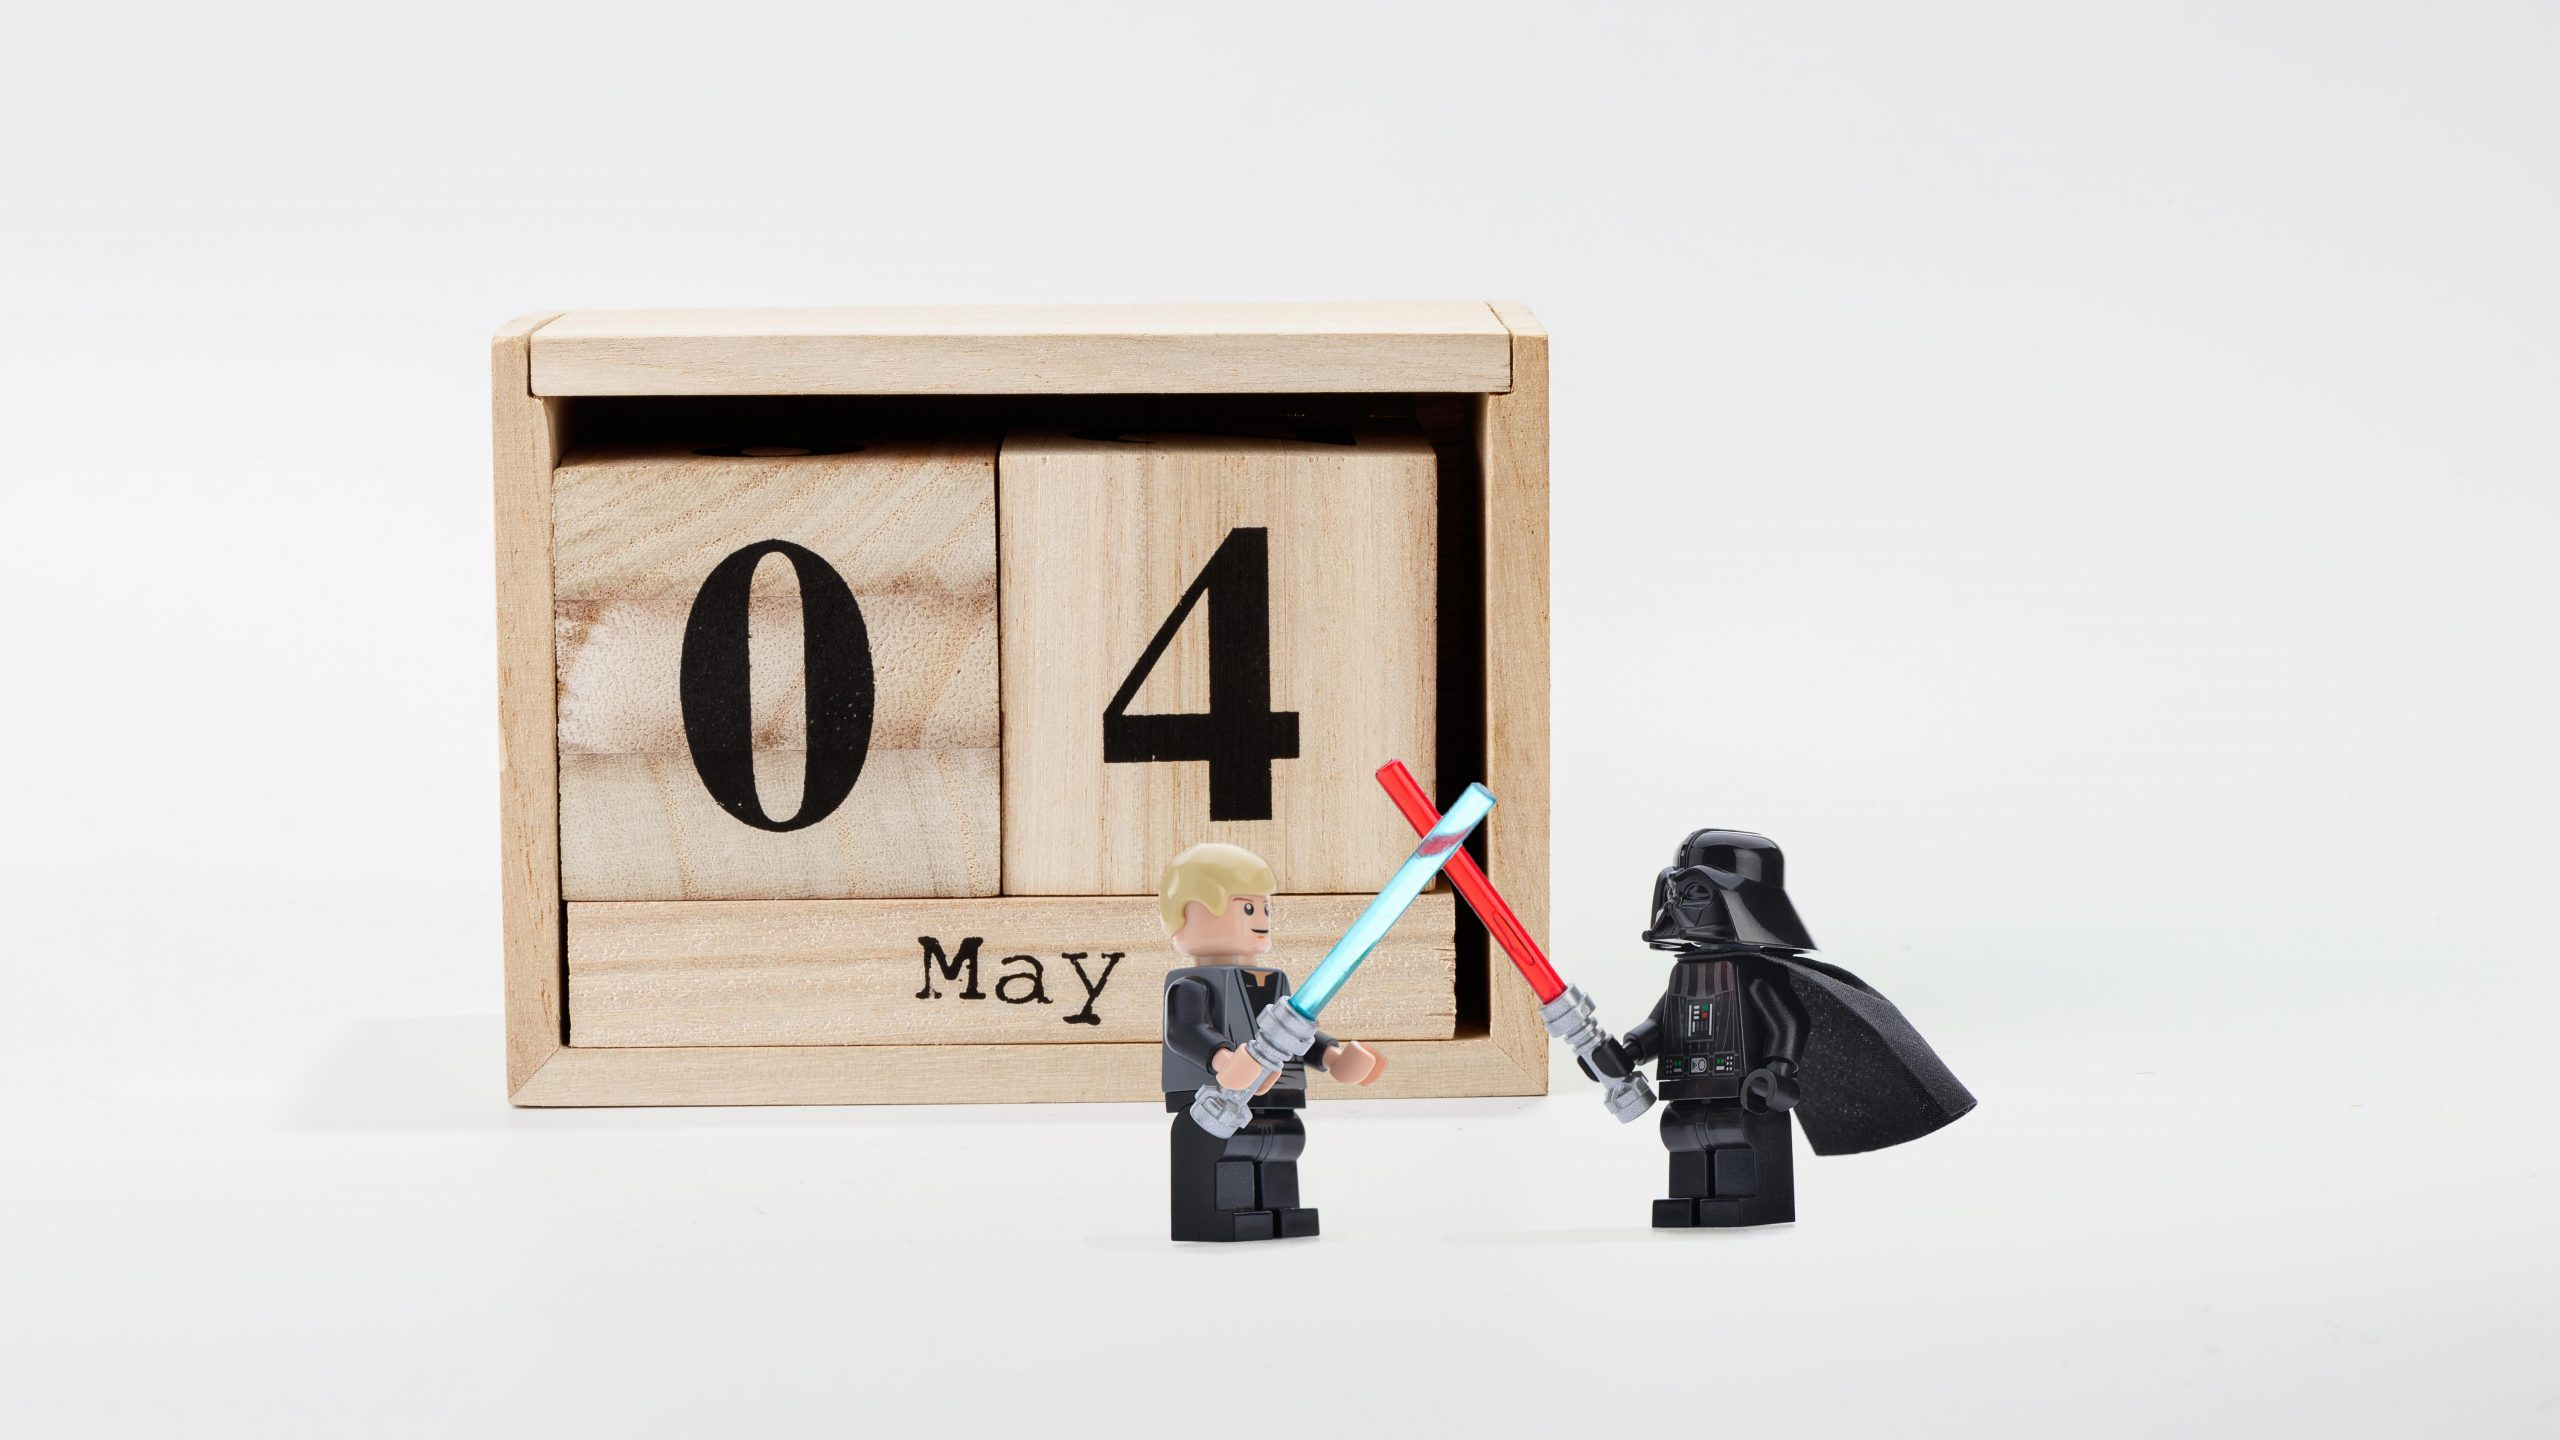 perpetual calendar May 04 and star wars lego figurines on gray background